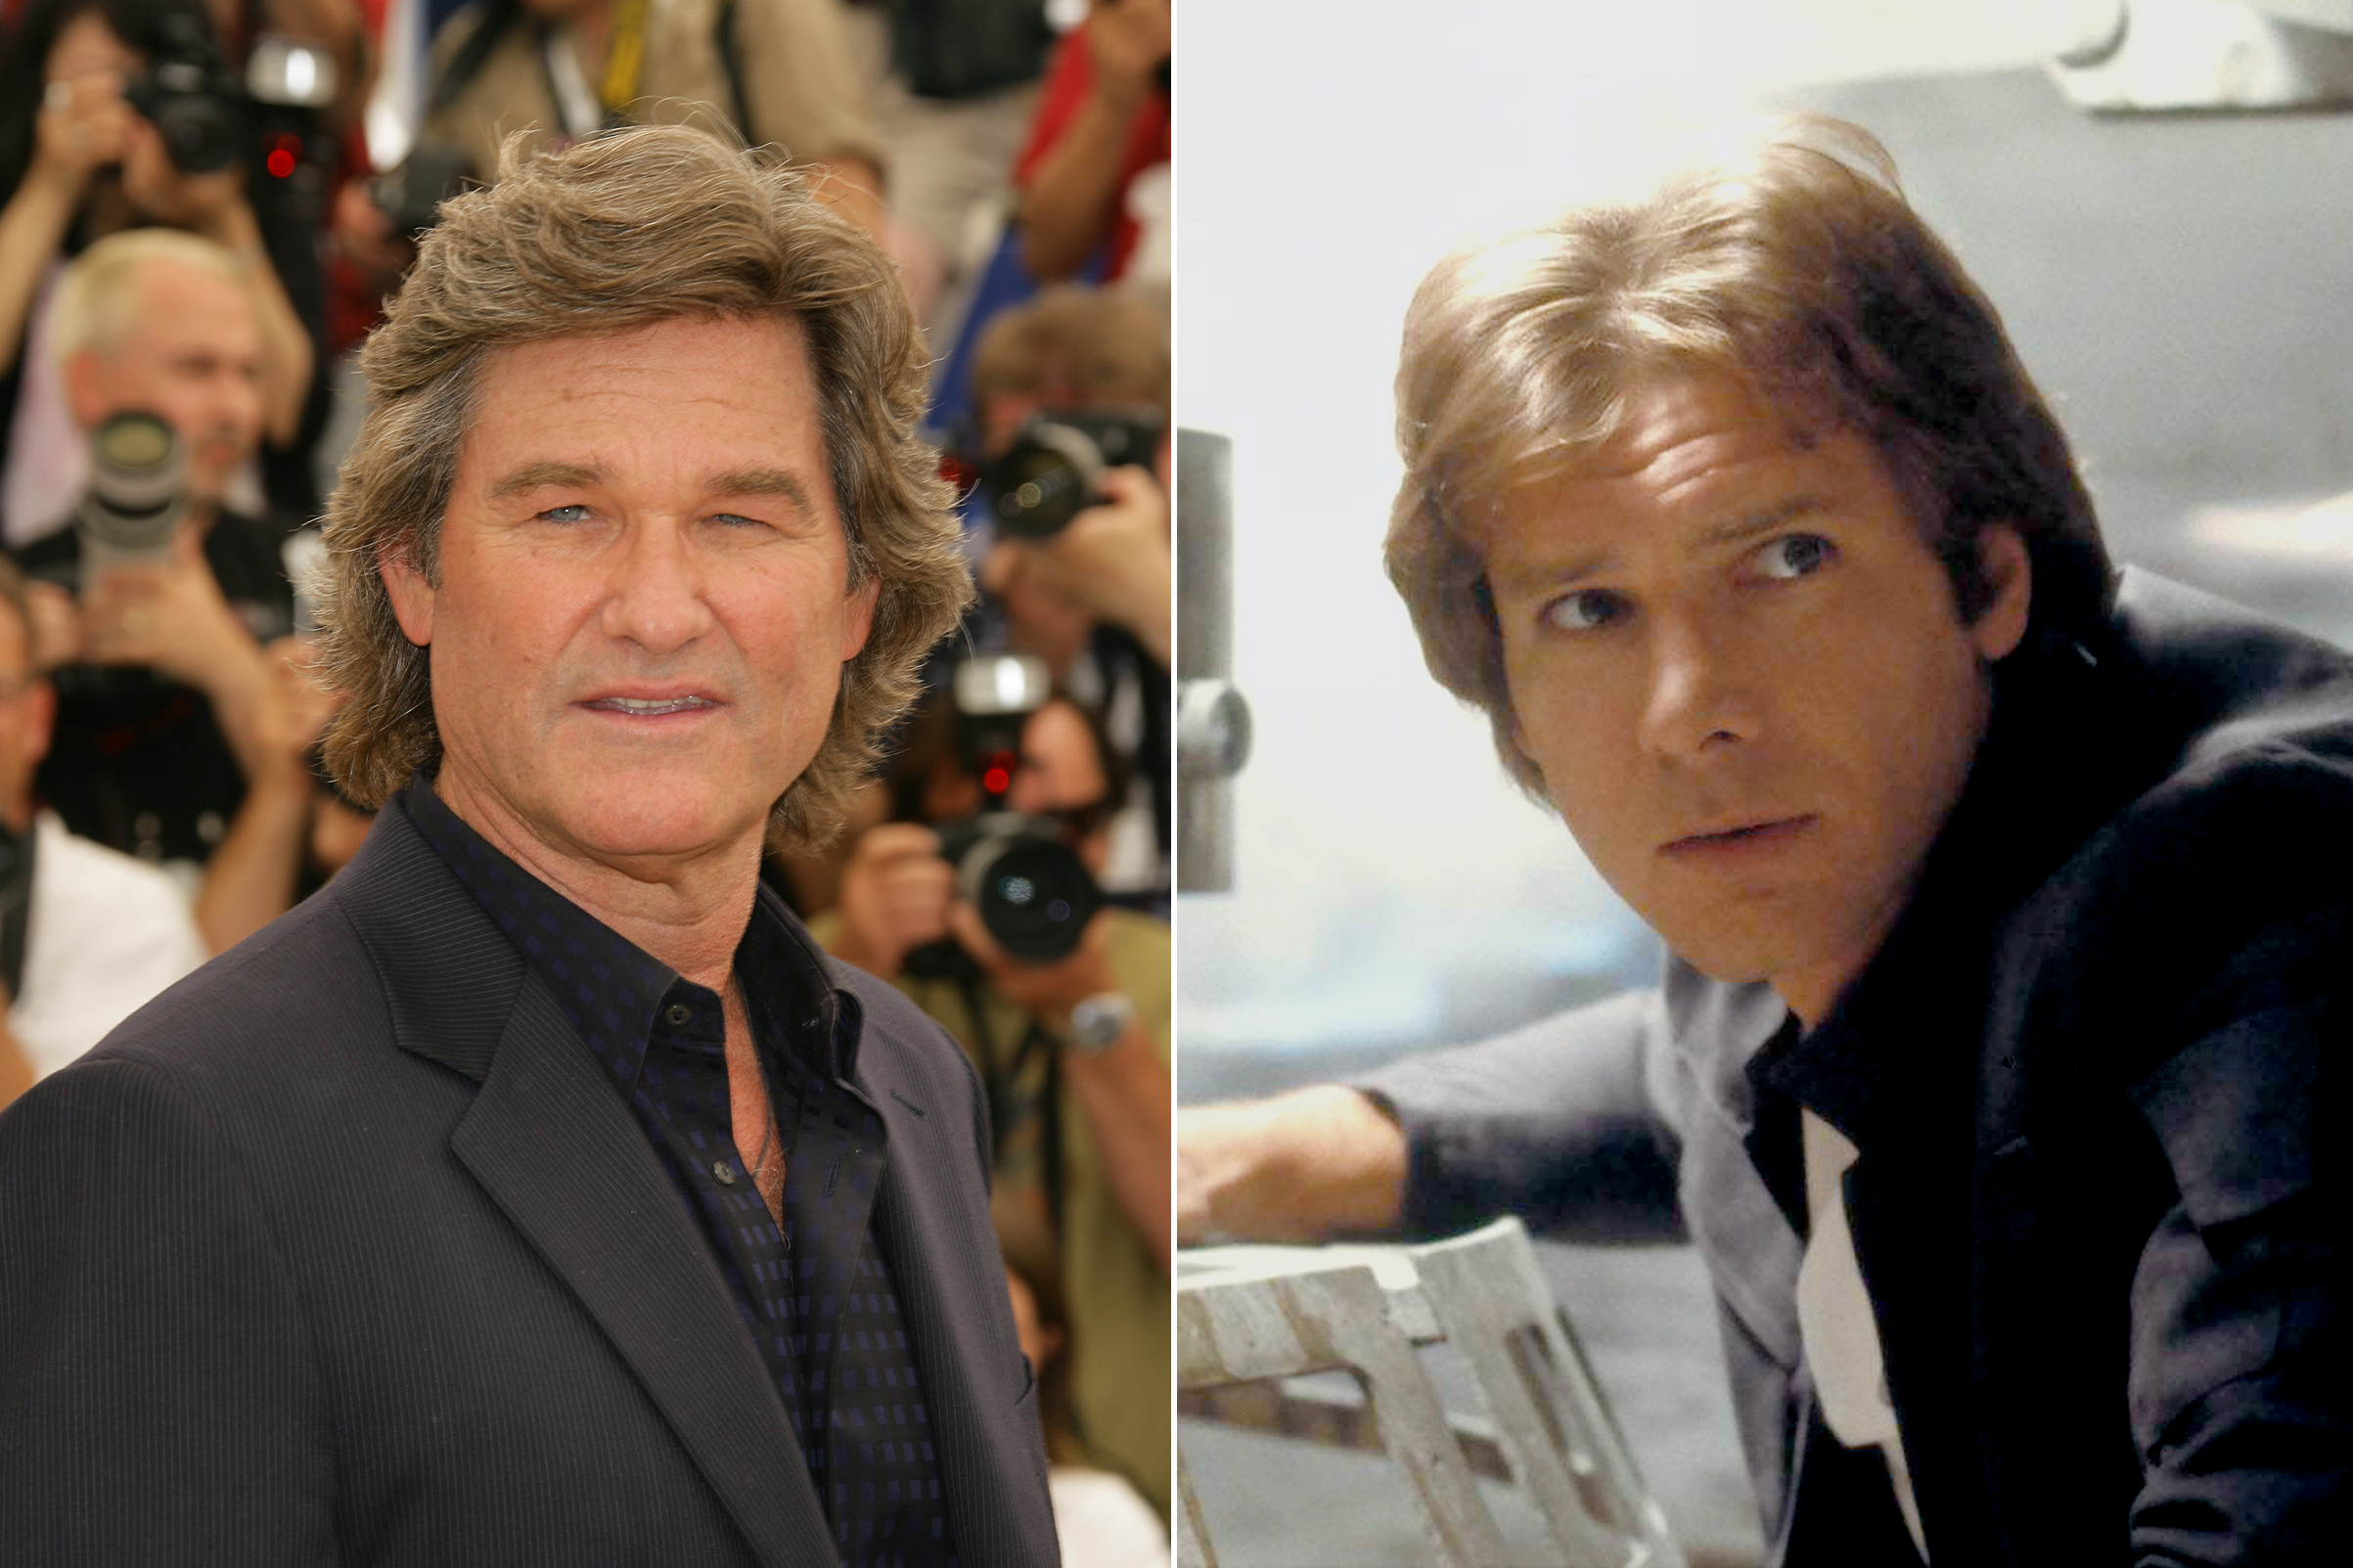 Kurt Russell was almost cast as Han Solo in Star Wars